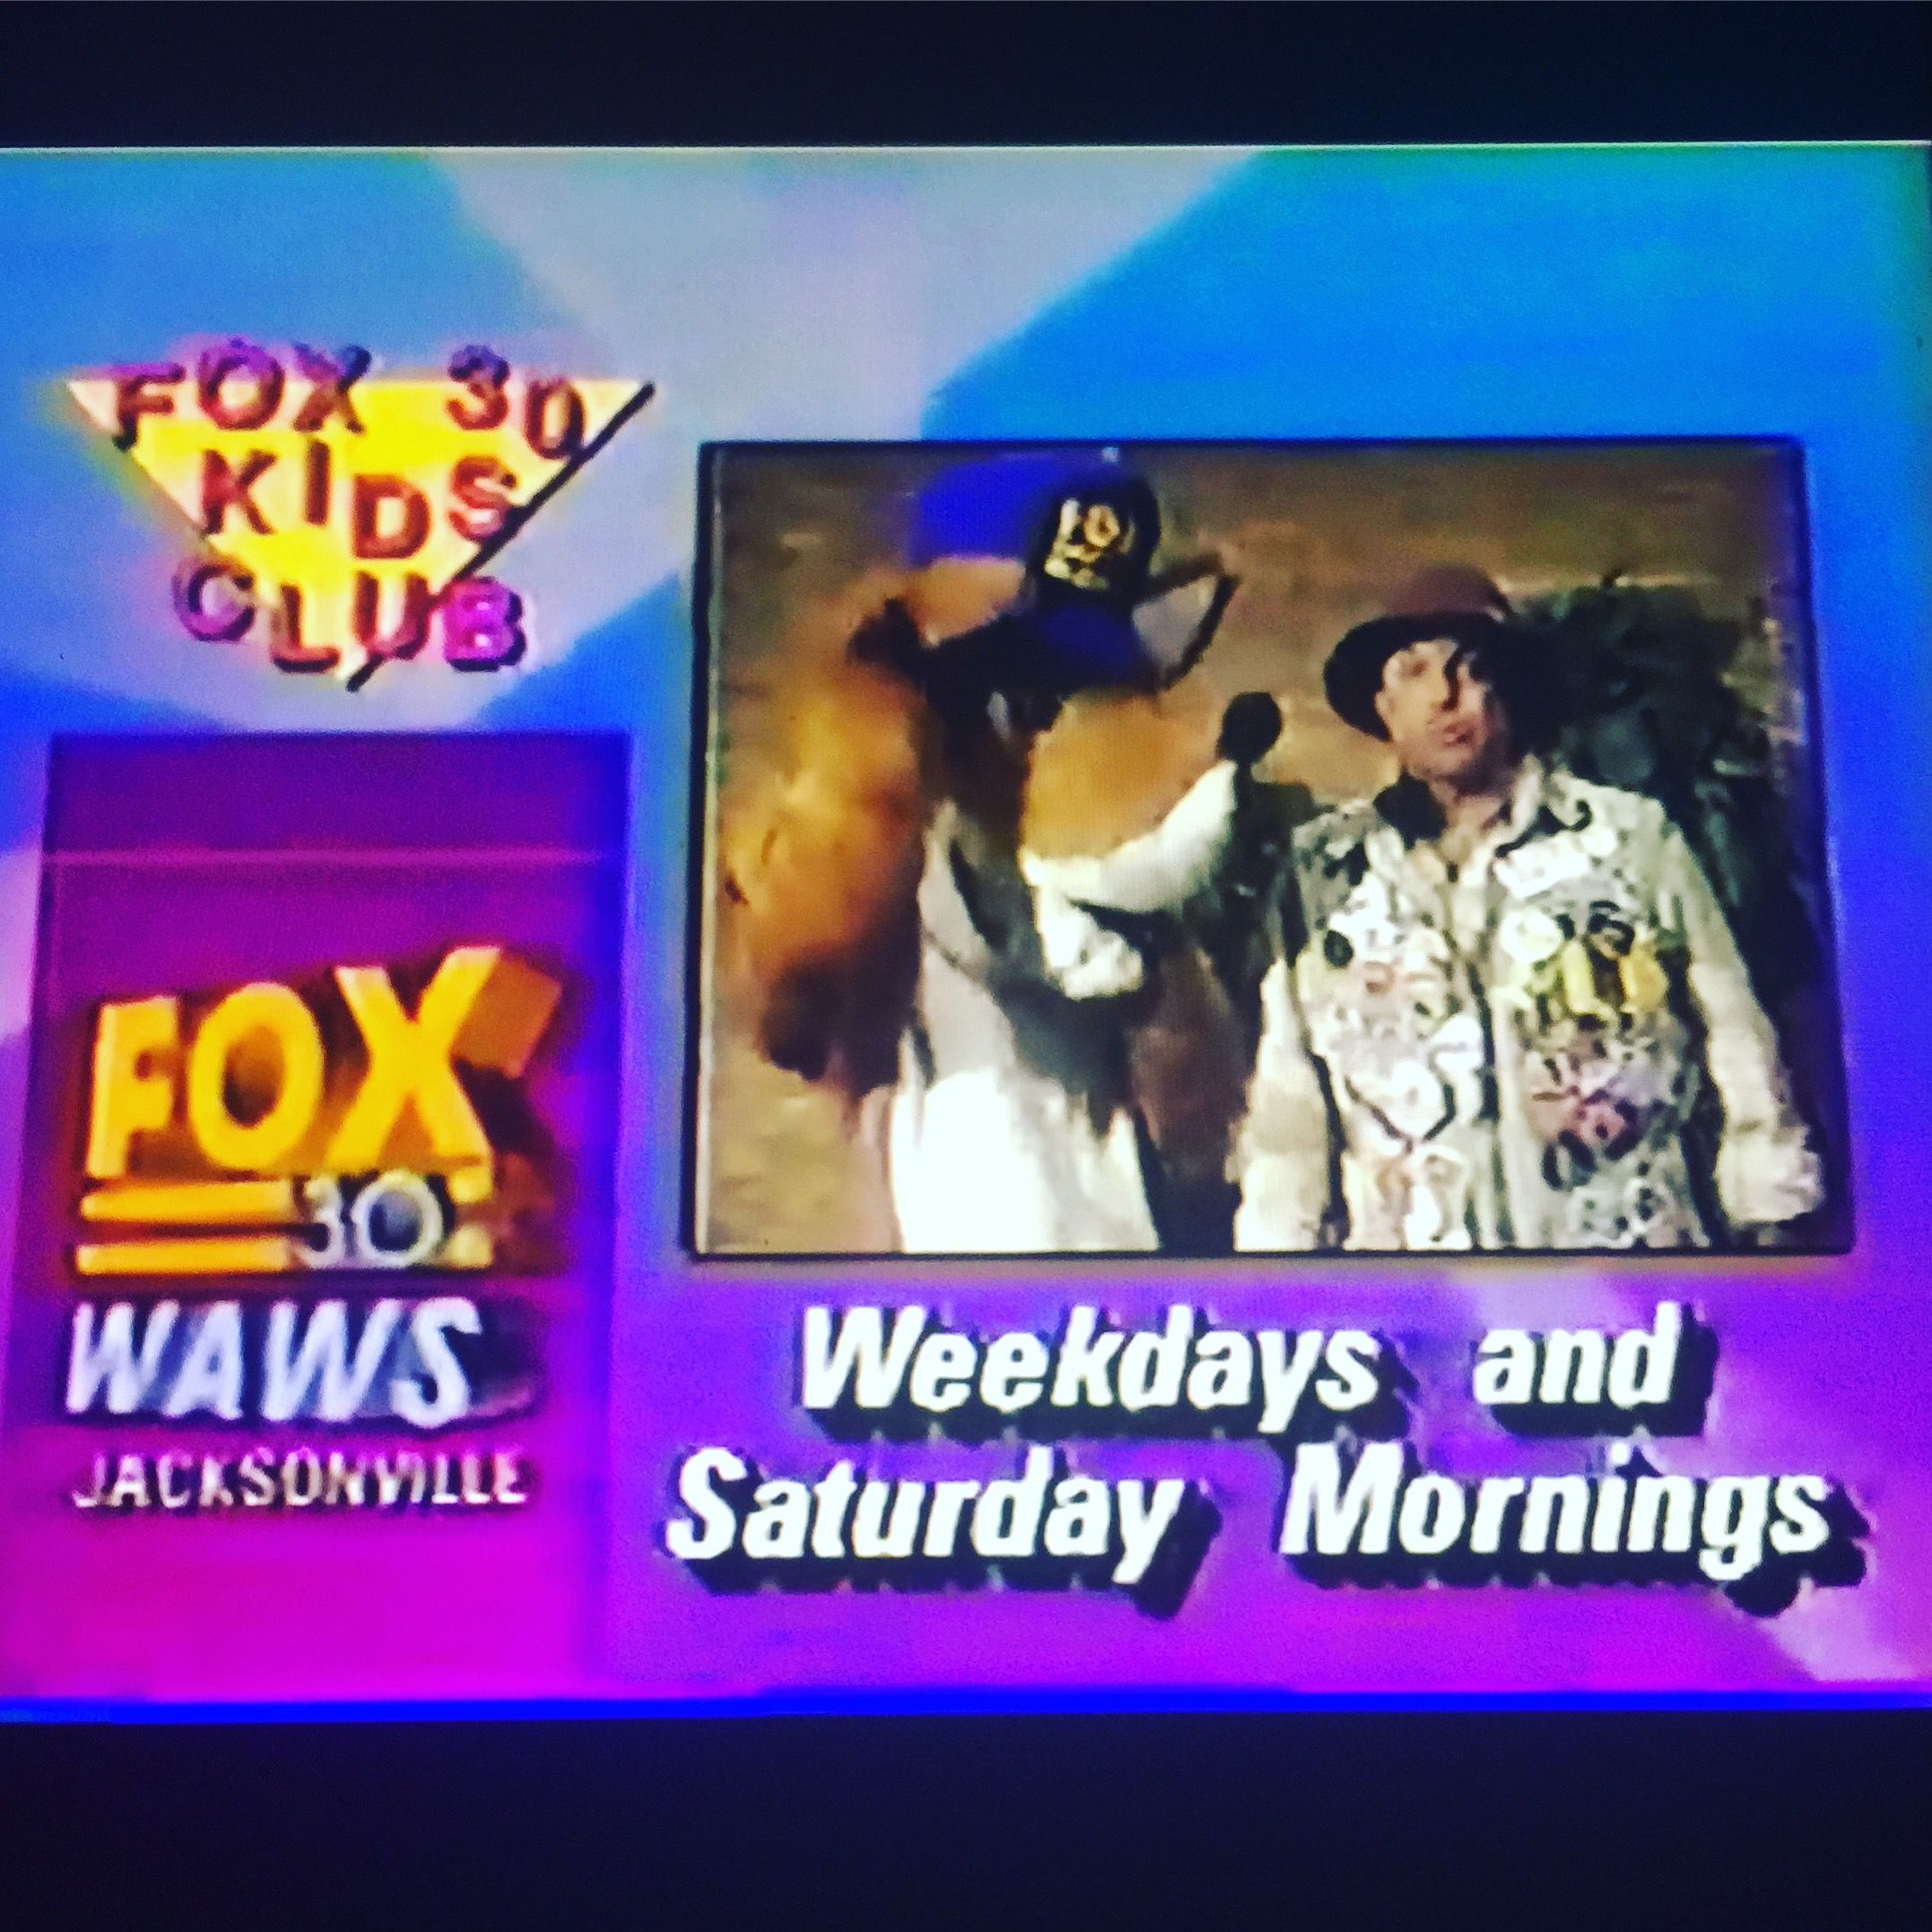 Pin by Mary Hernandez on My TV Shows Fox kids, Me tv, Kids